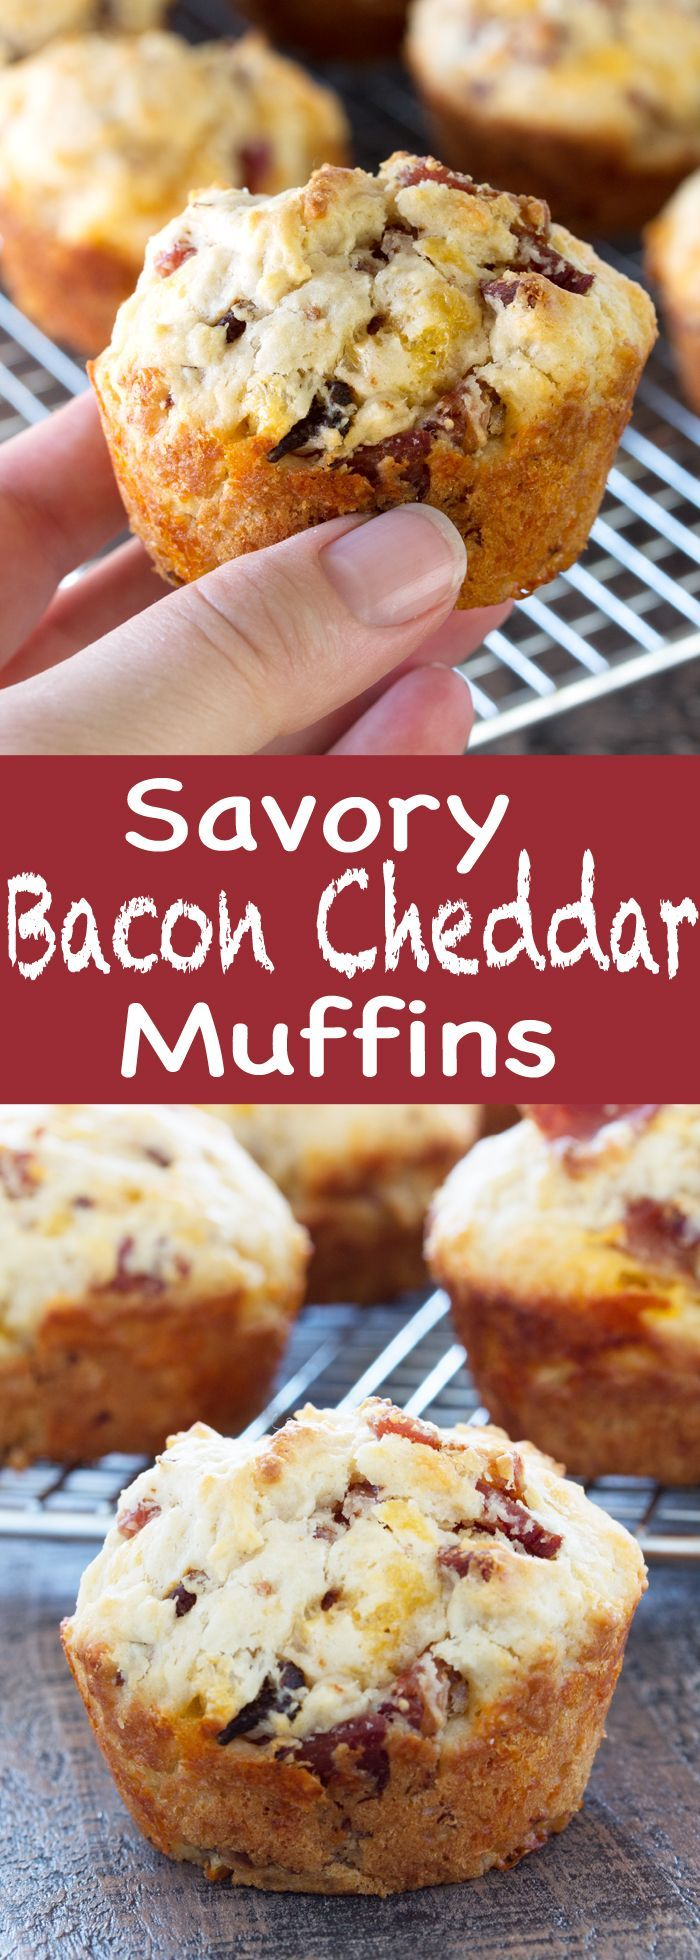 Savory Bacon Cheddar Muffins are the perfect on-the-go breakfast item. It's a hearty, moist, and deliciously savory muffin that you'll be happy to wake up to every day!